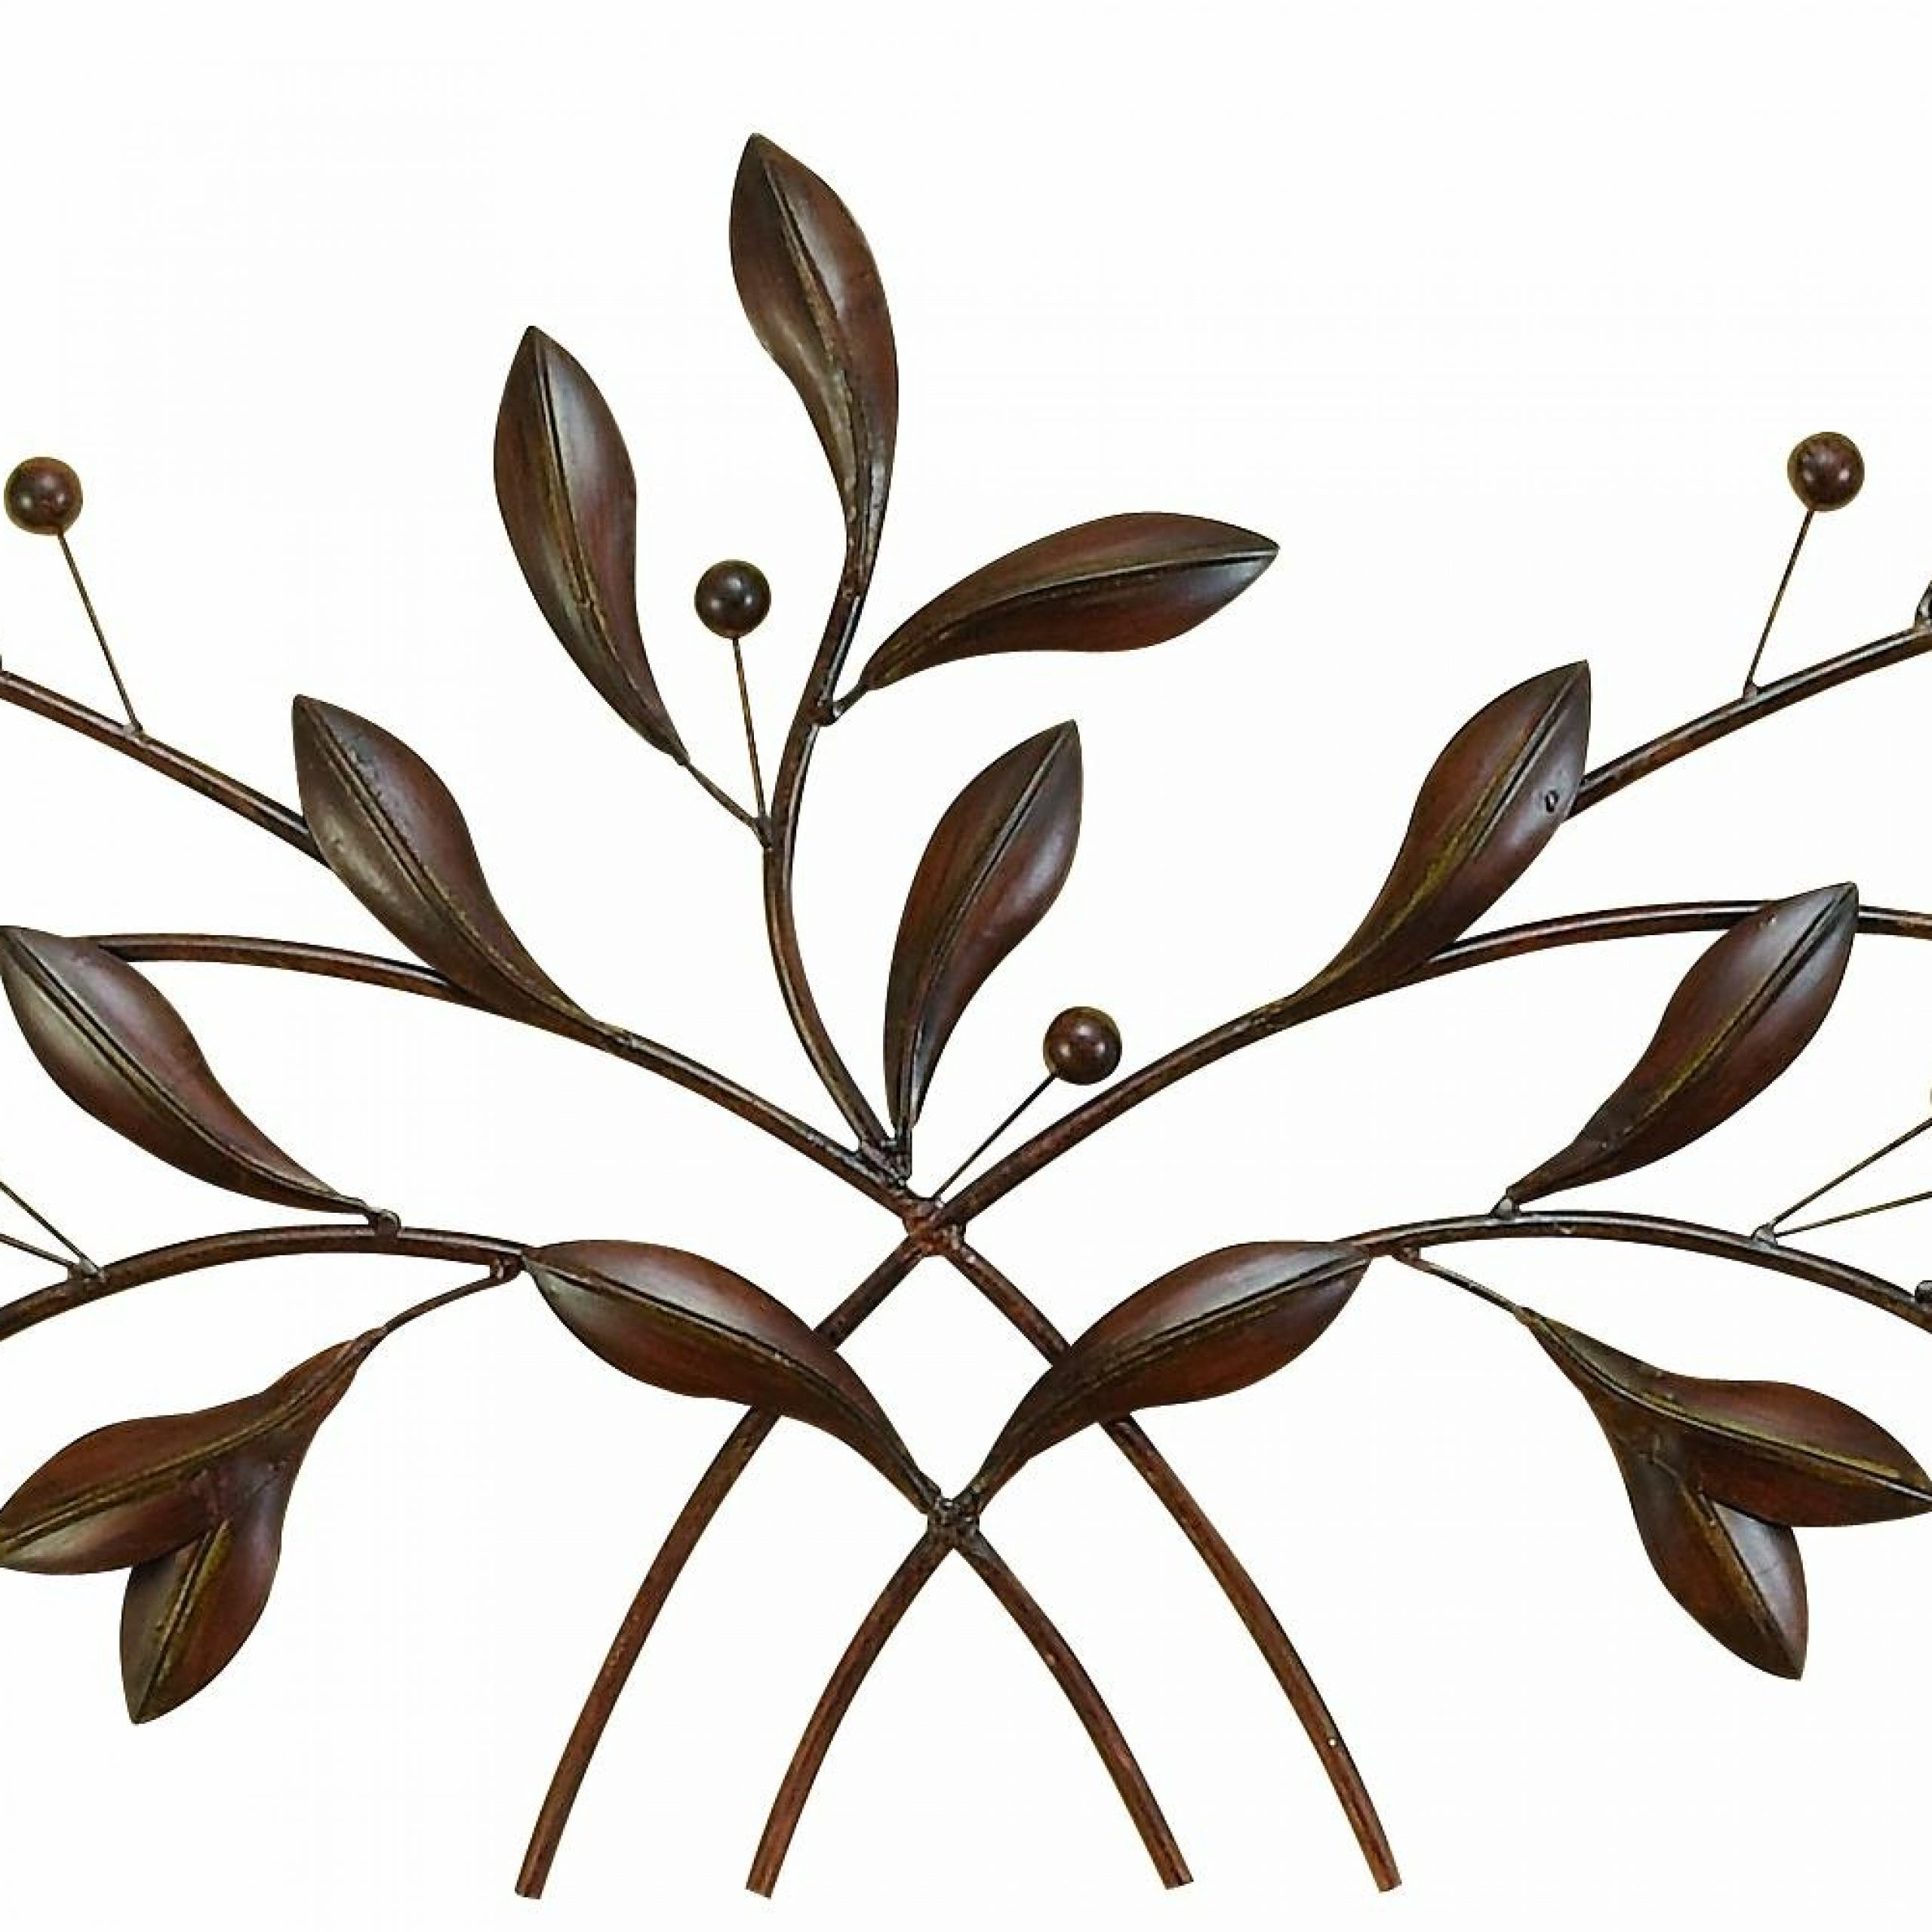 2020 Metal Leaf With Berries Wall Decor With Regard To Metal Leaf With Berries Wall Décor (View 2 of 20)